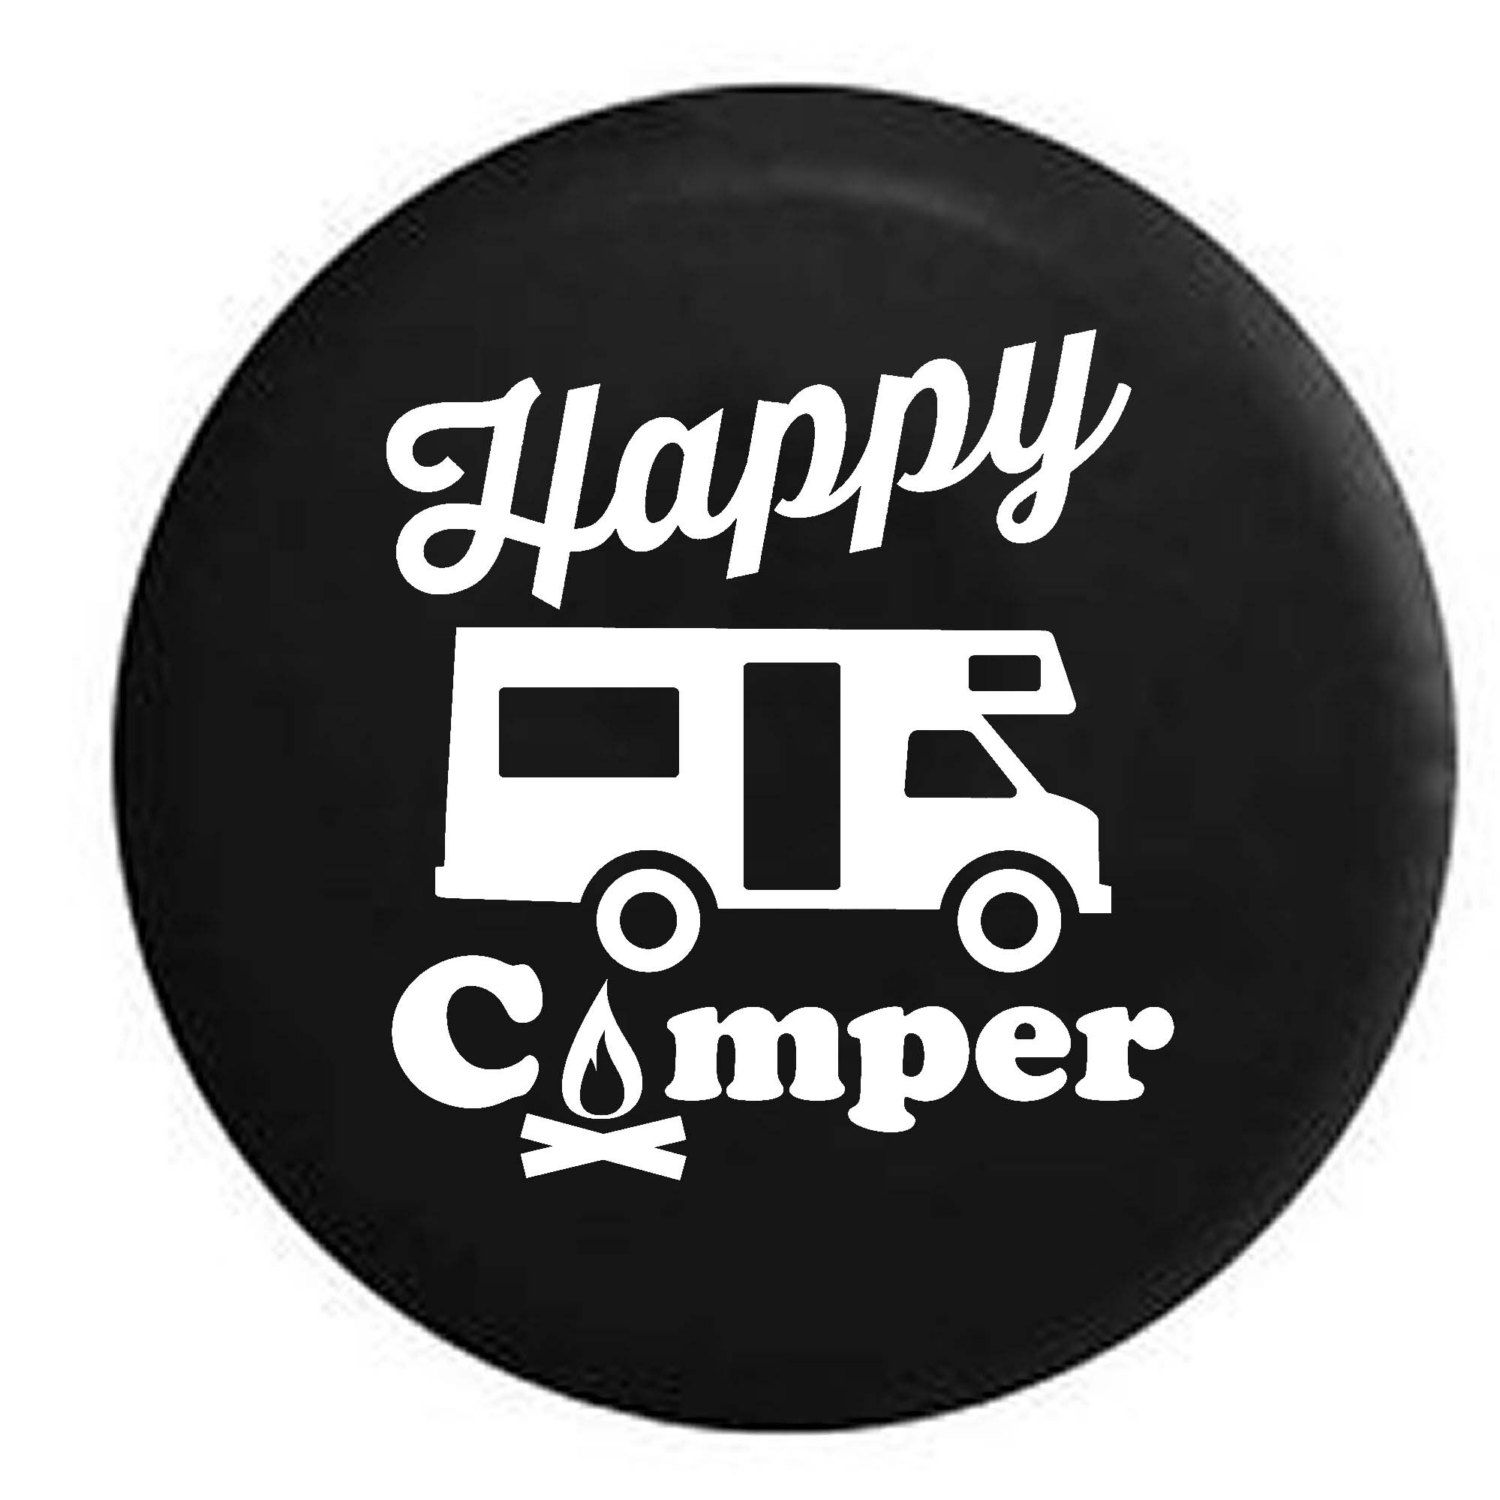 Happy Camper Camp Fire Recreational Vehicle Motorhome L Rv Camper Spare Tire Recreational Vehicles Recreational Vehicles Motorhome Rv Campers